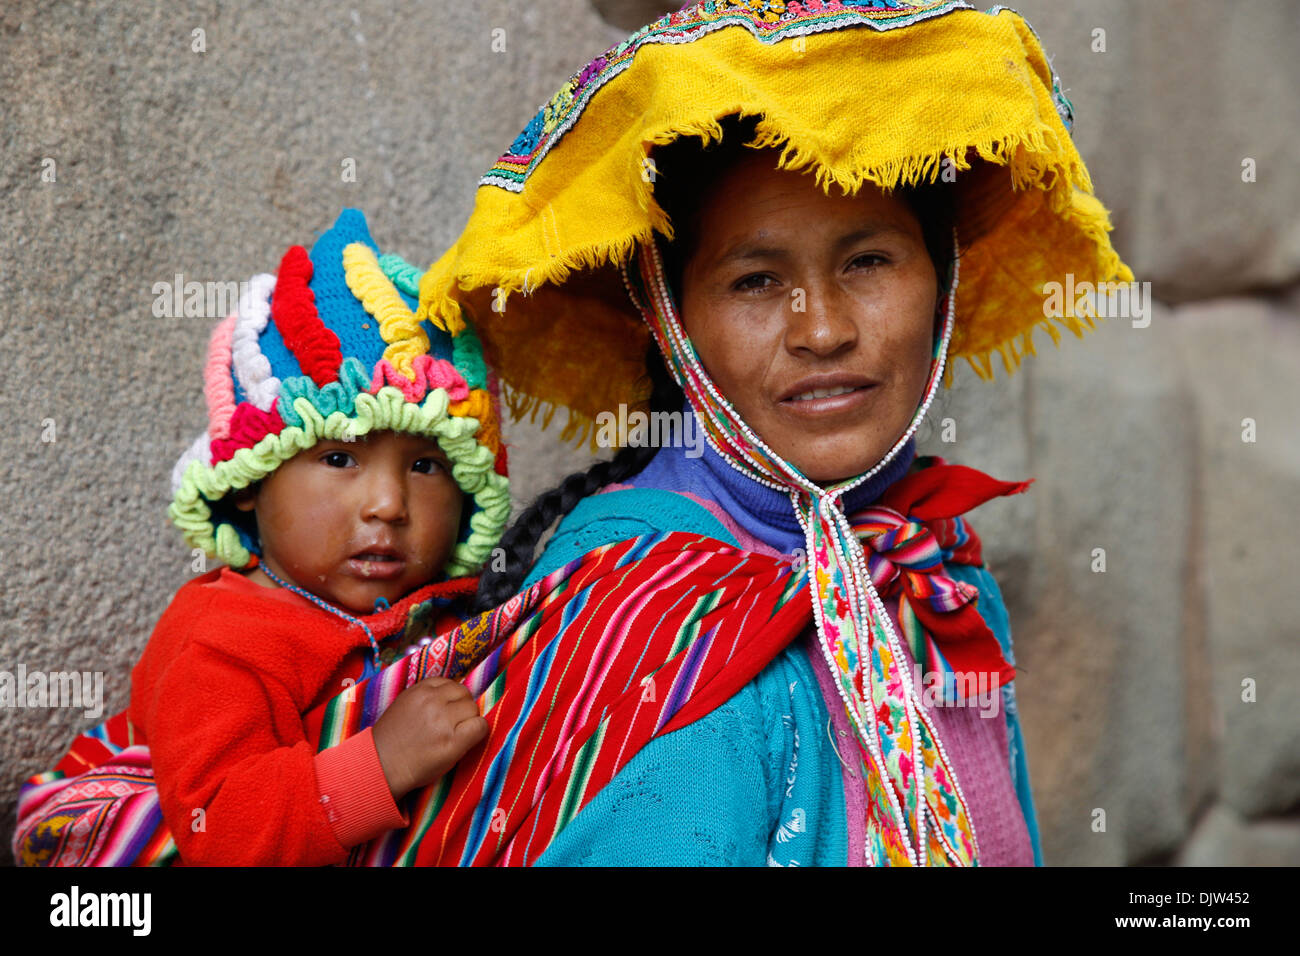 Portrait of Quechua mother and daughter, Cuzco, Peru. - Stock Image